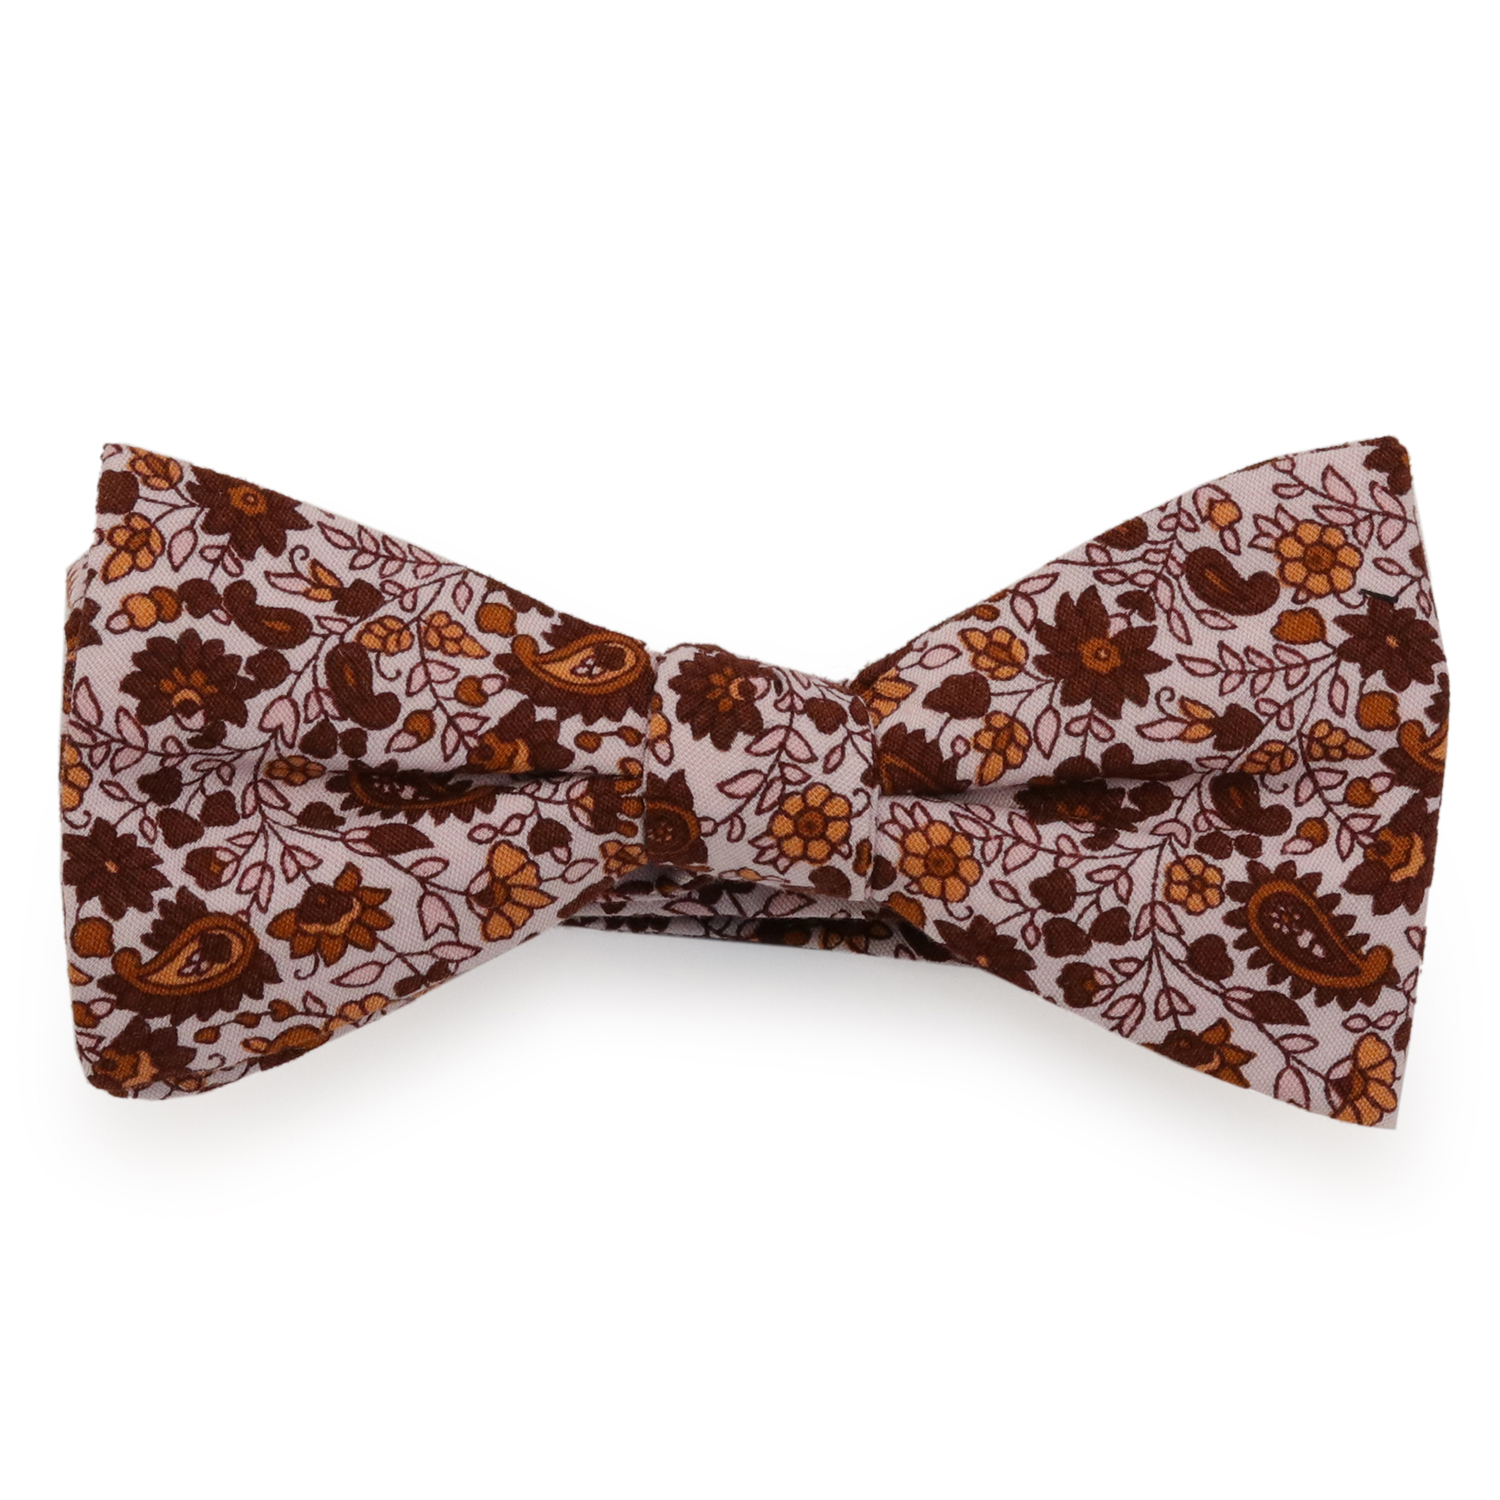 69th Avenue Men's Pink Cotton Floral Printed Bow Tie